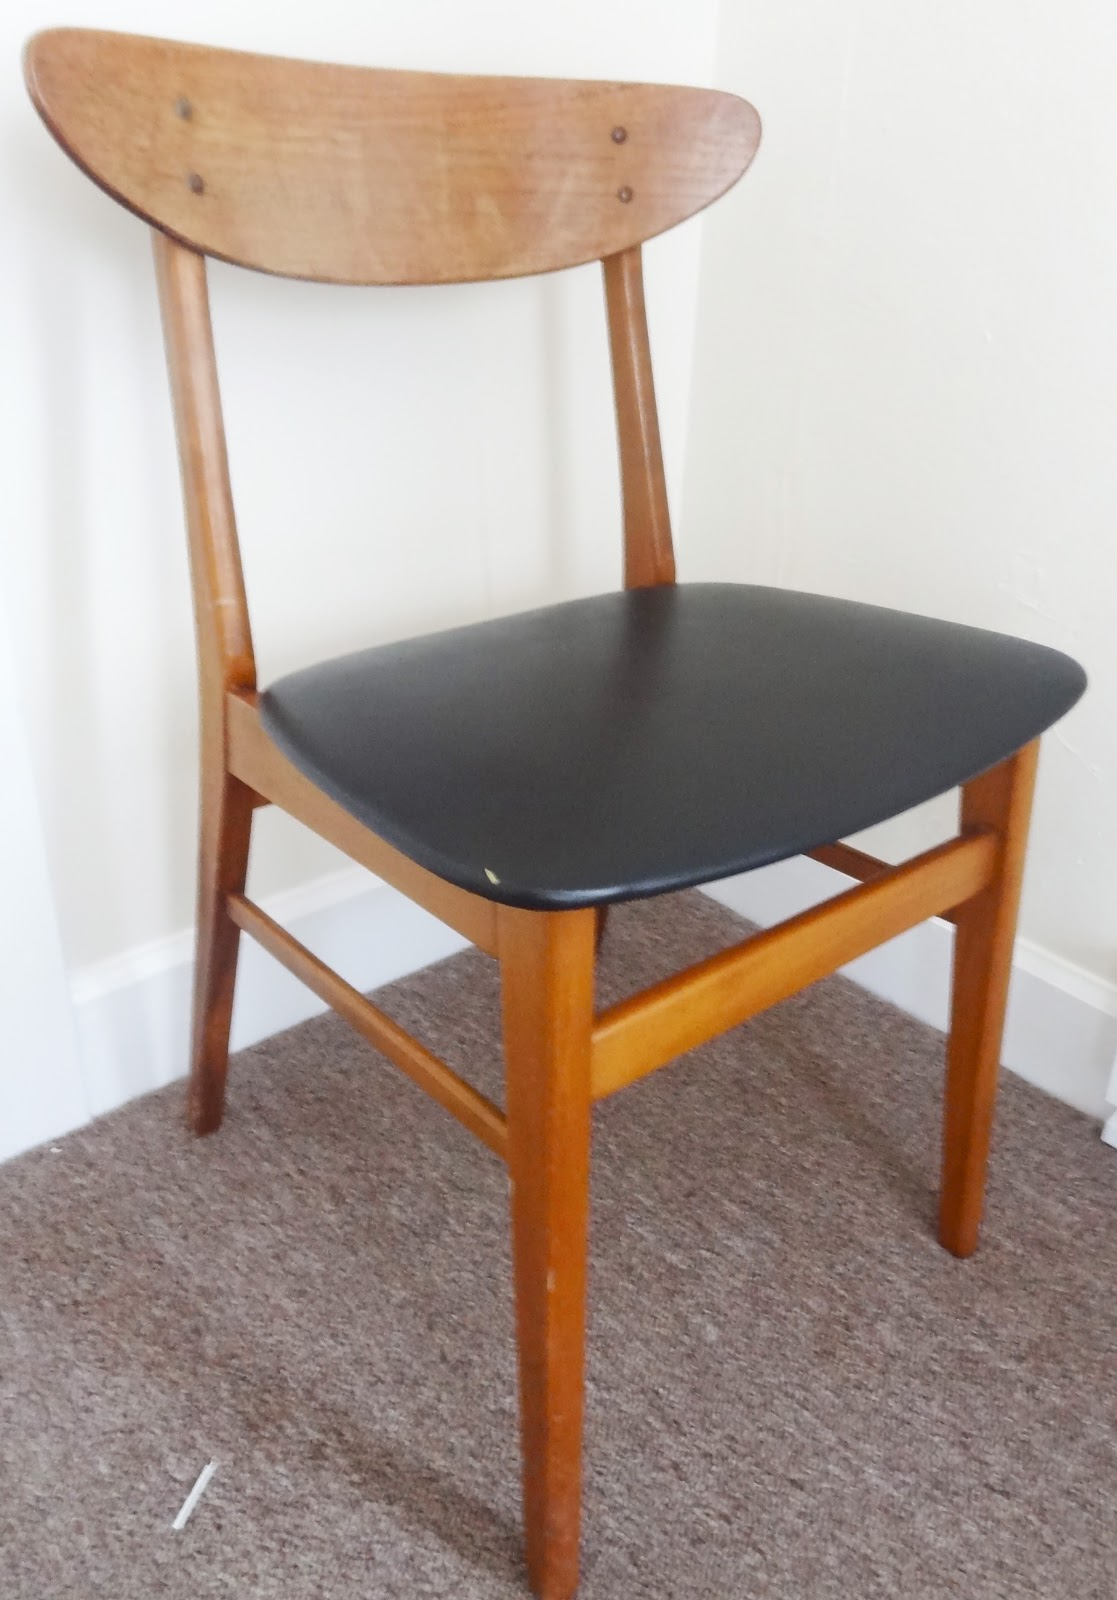 Houzz: Quick Fix Reupholster A Chair Seat | Revamp Homegoods